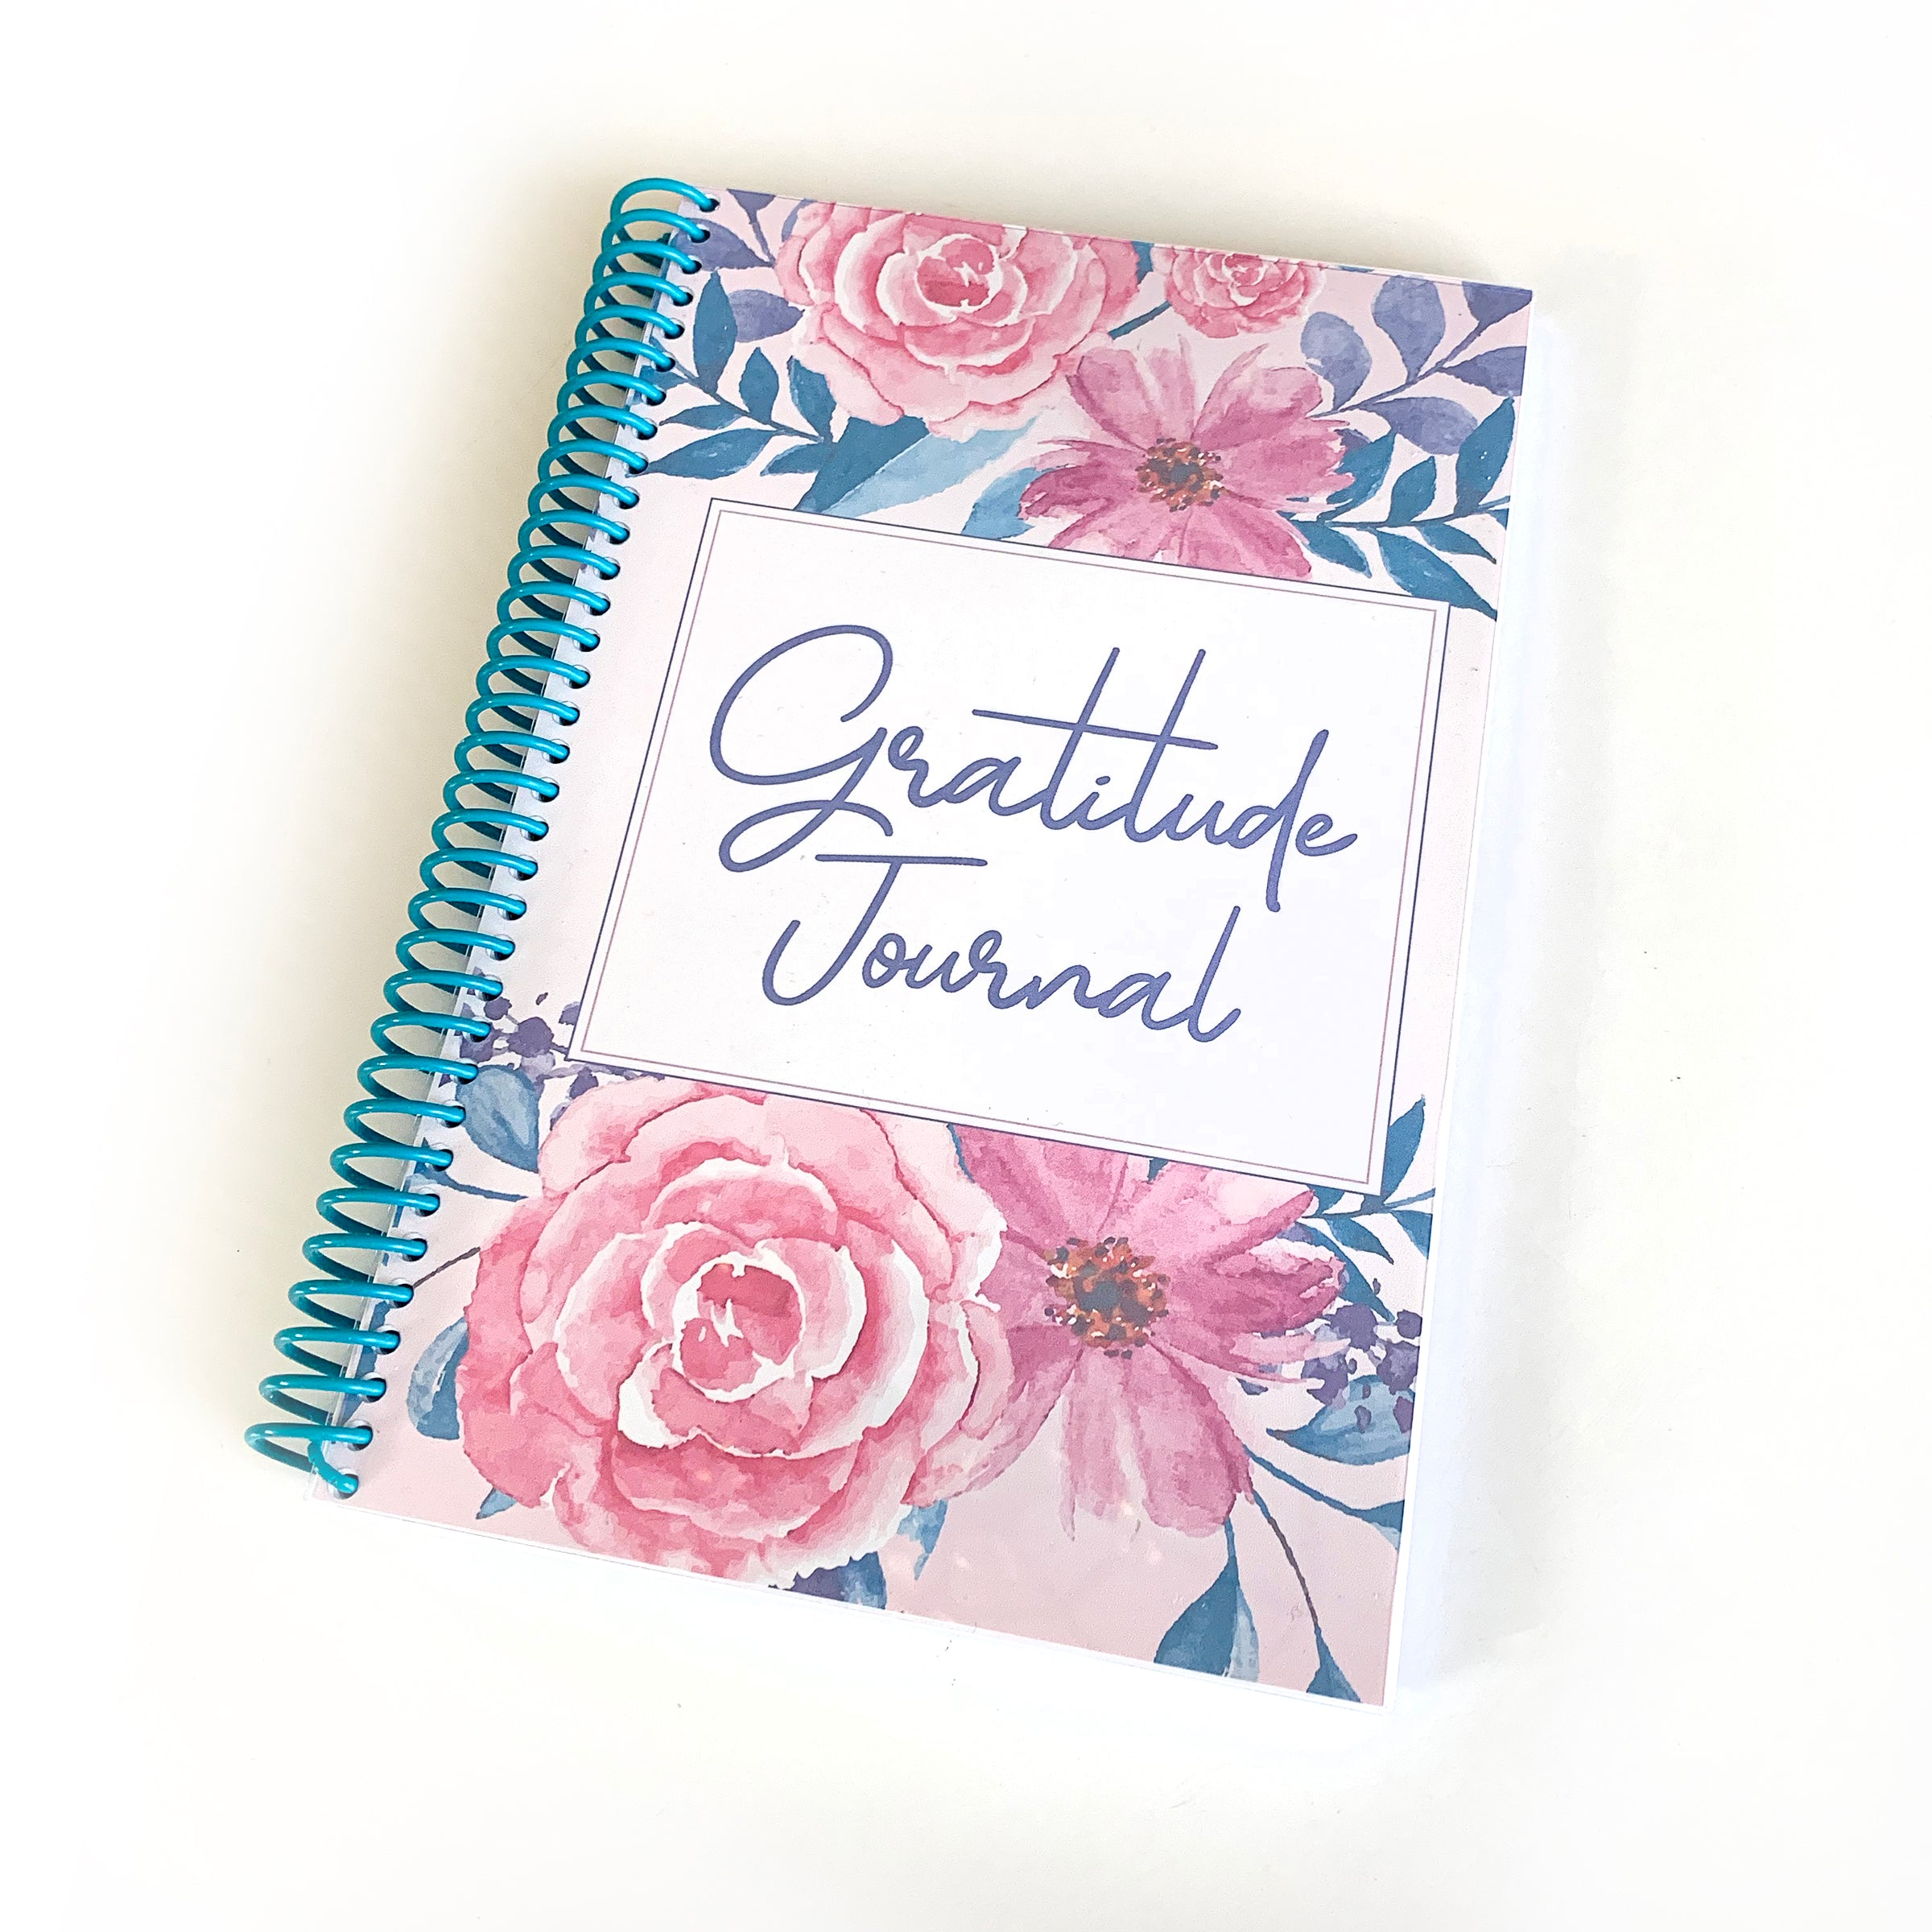 One Minute Gratitude Journal For Women